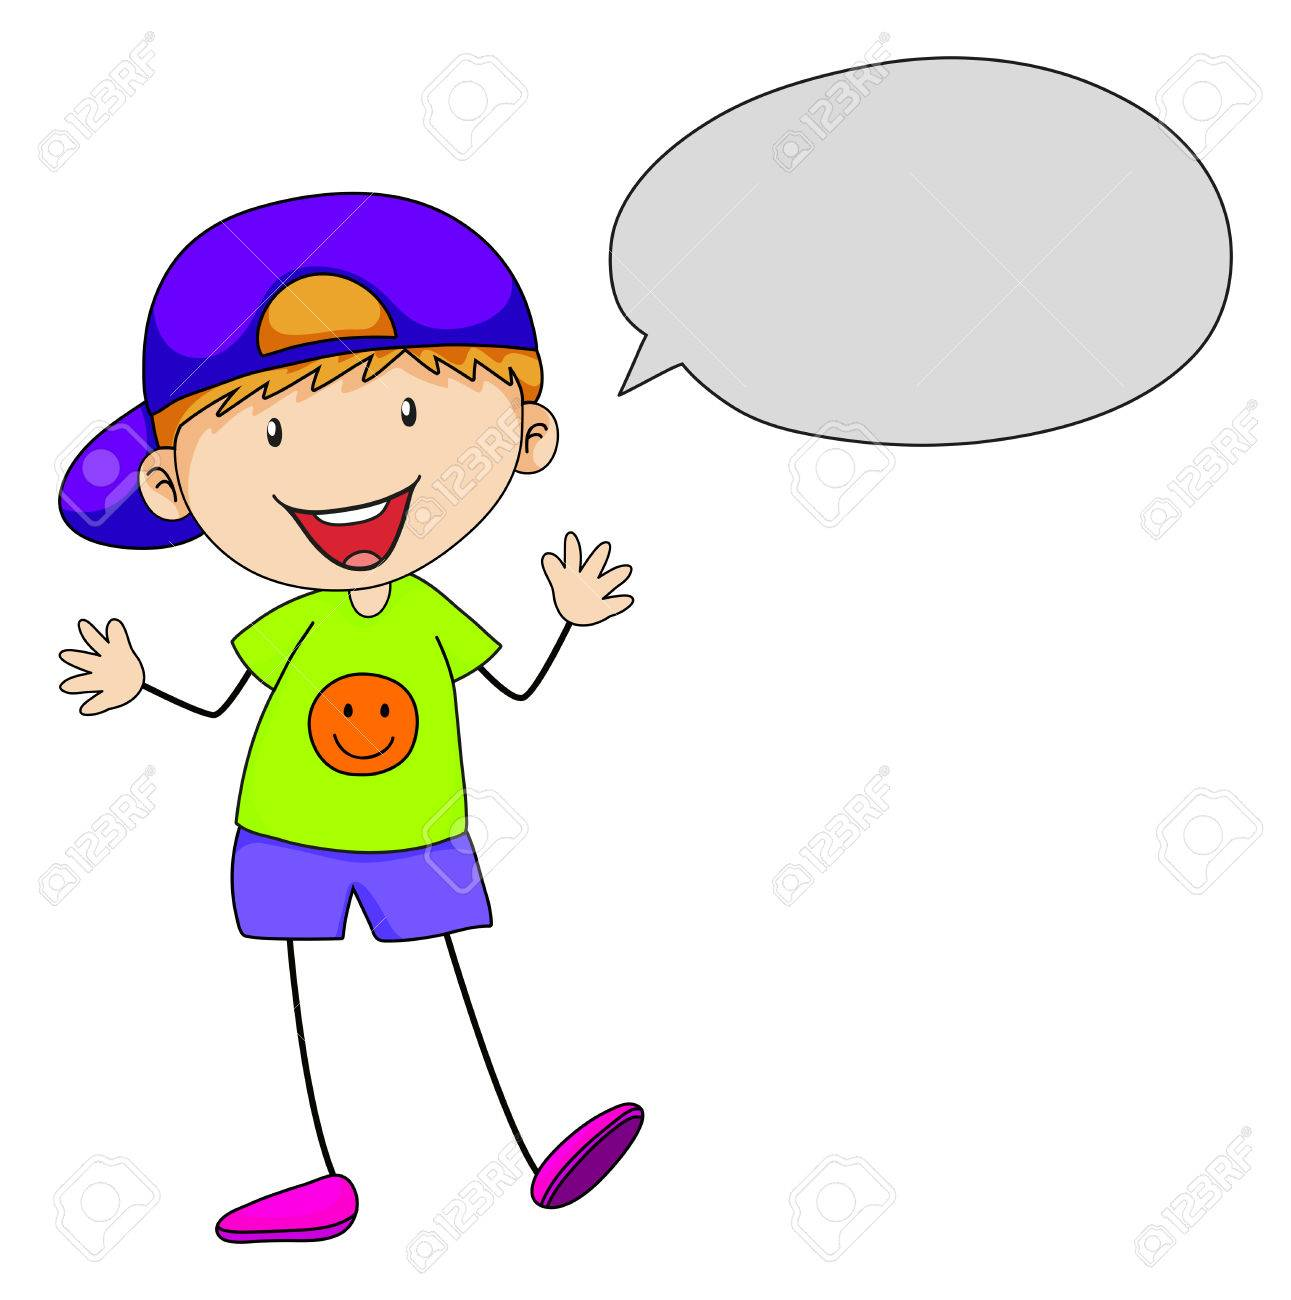 Boy speaking with speech bubble.